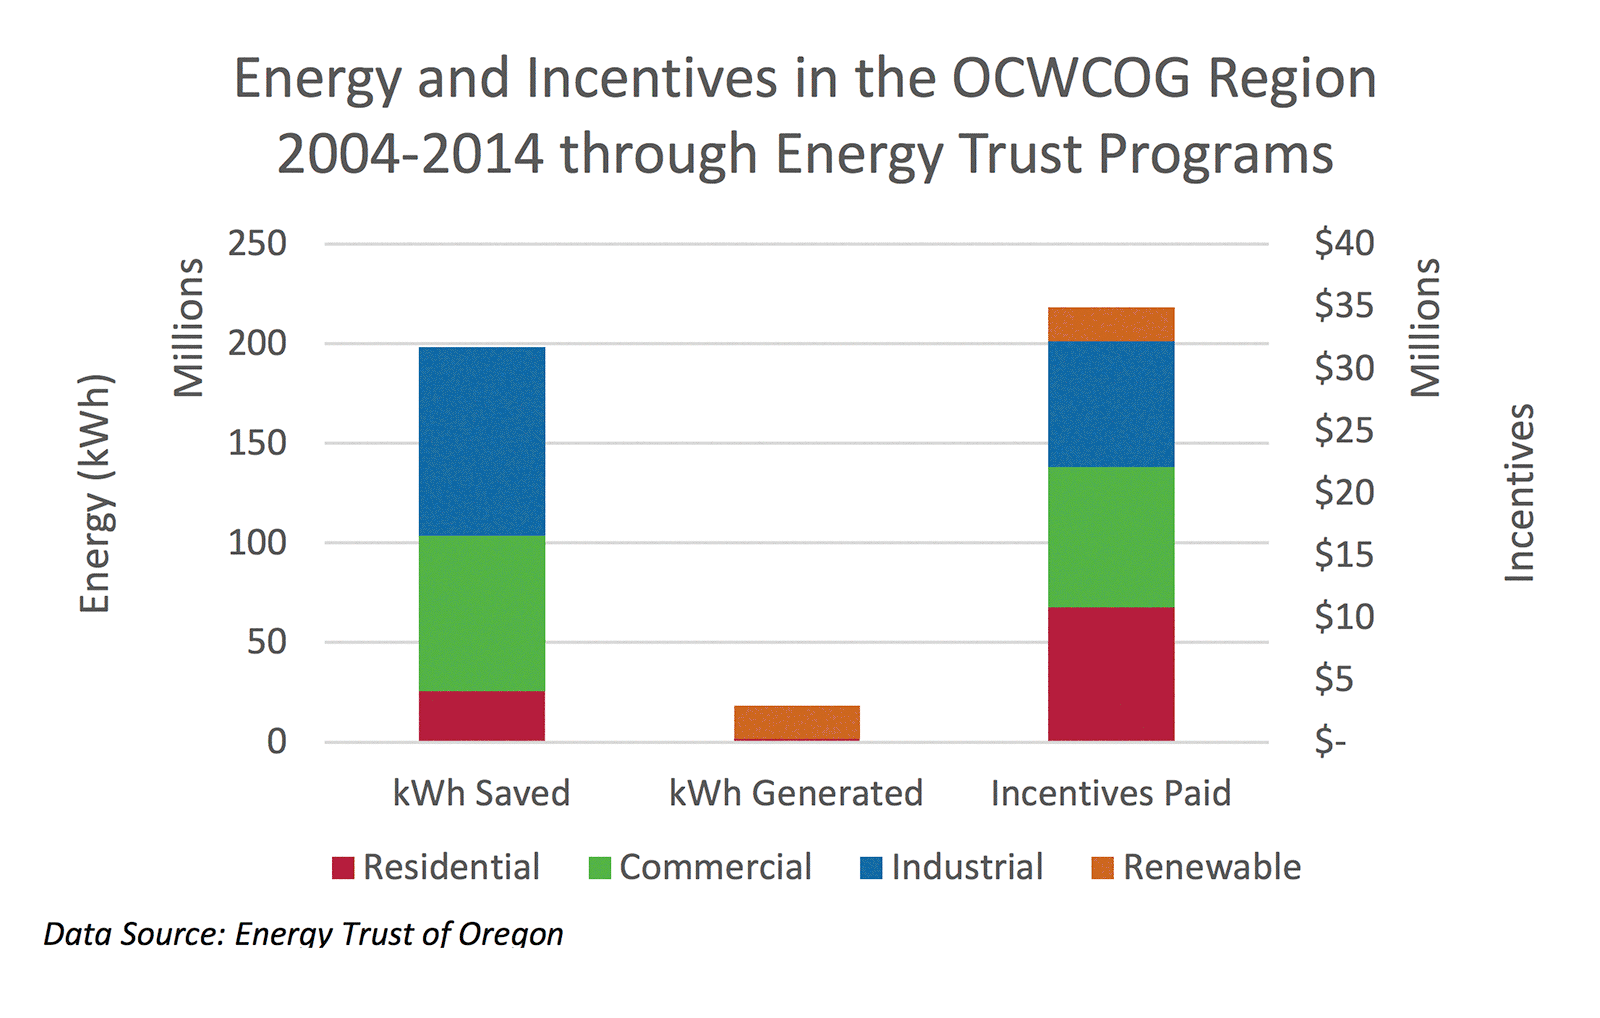 Energy and Incentives in the OCWCOG Region 2004-2014 through Energy Trust Programs